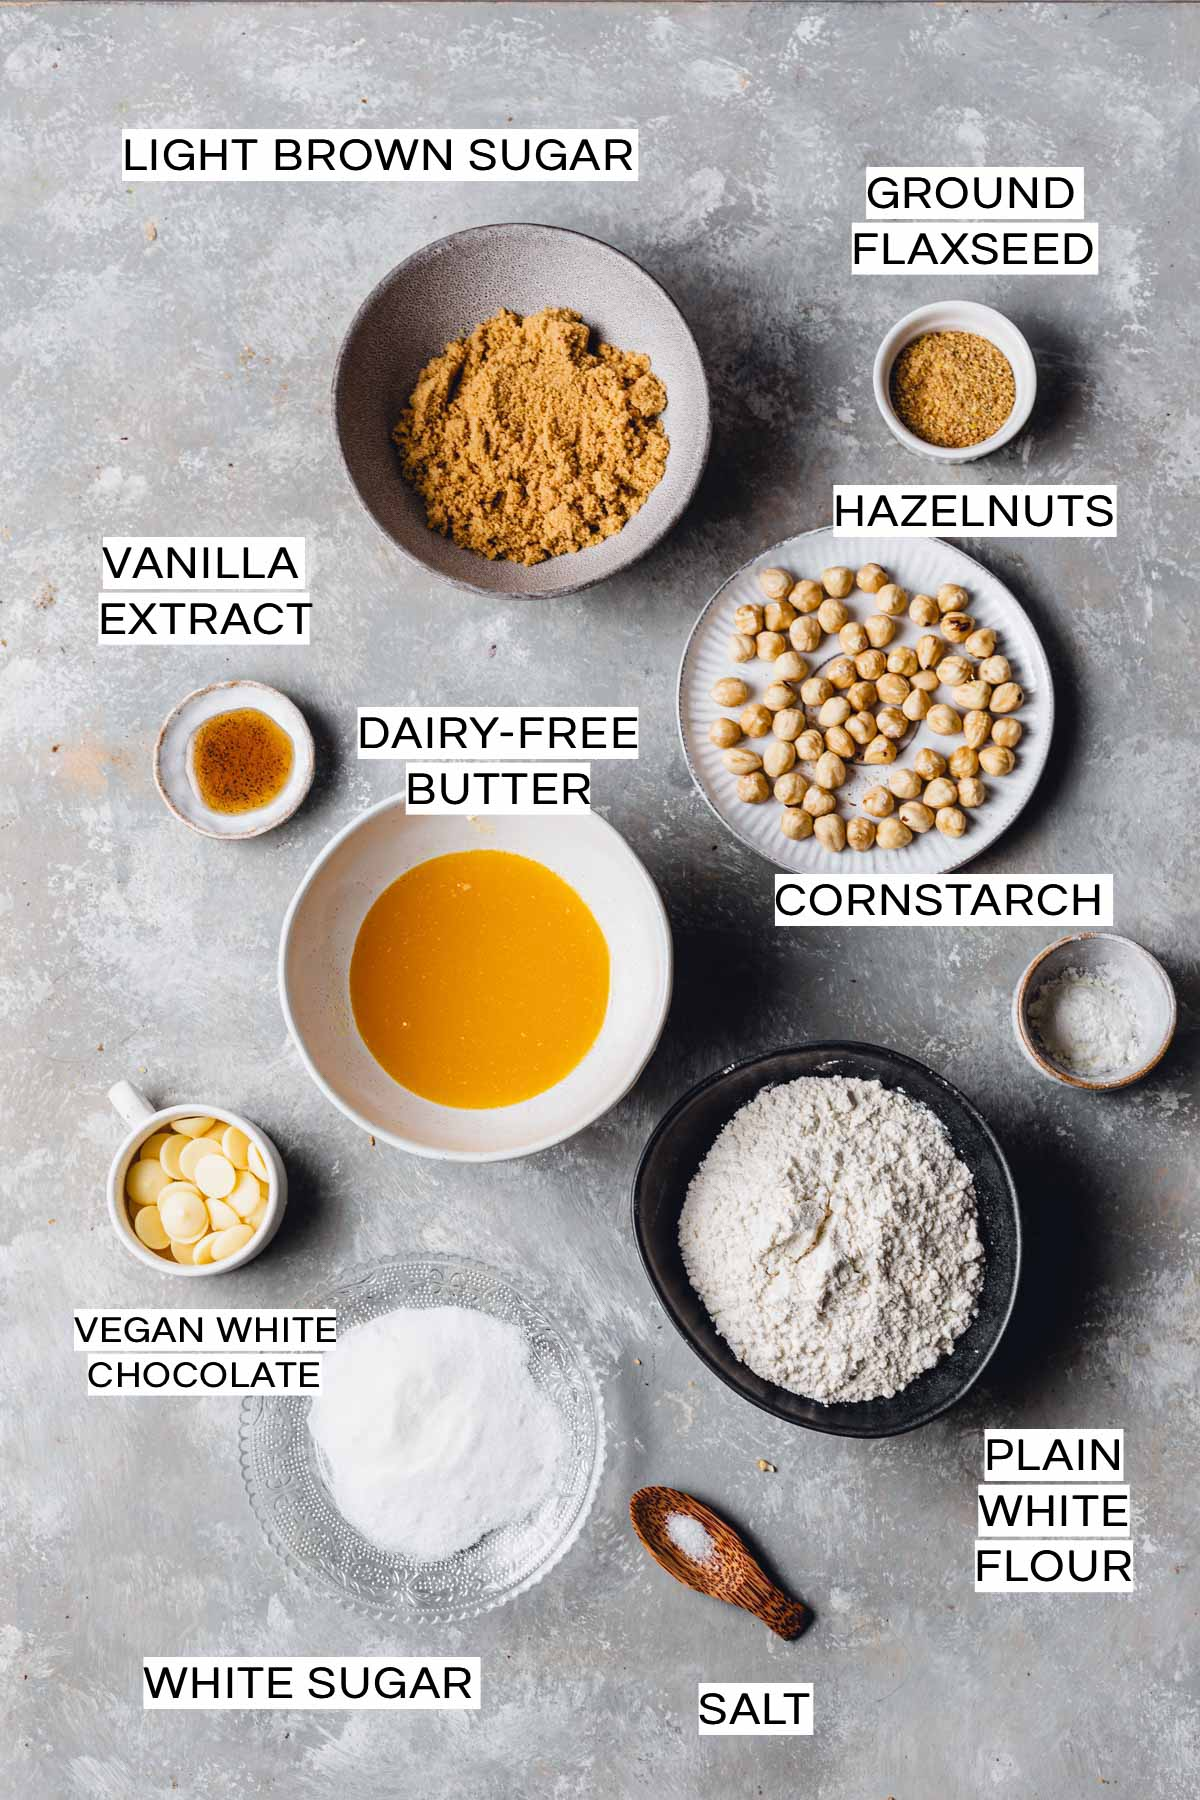 An overhead view of all ingredients needed to bake a blondie laid on a flat grey surface